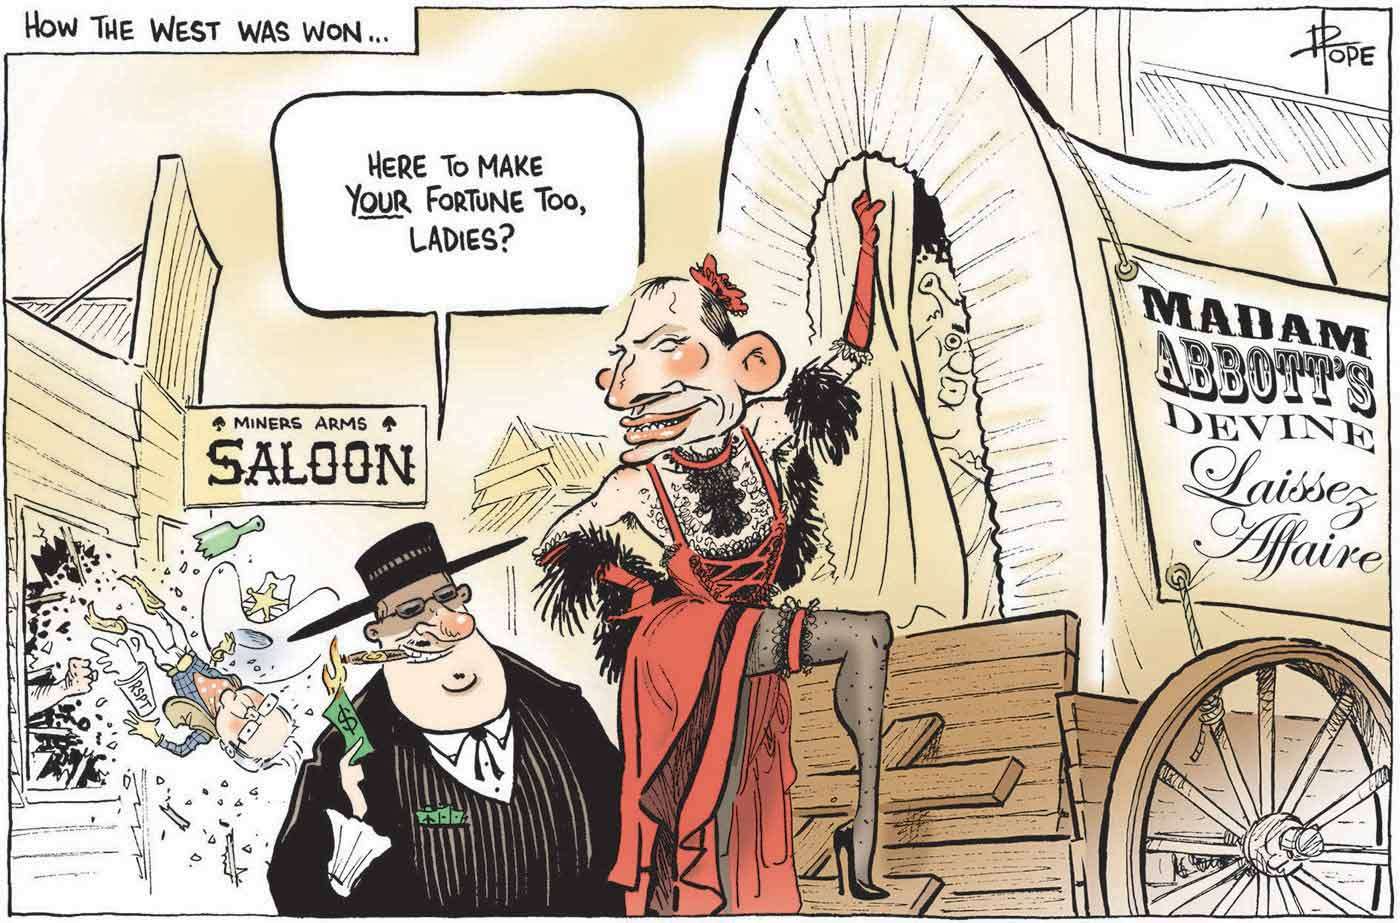 A colour cartoon depicting a wild west scene. Tony Abbott, dressed as a brothel 'madame' in a red dress, high heels, stockings and a feather boa, stands at the back of a covered wagon. A sign on the side of the wagon says 'Madame Abbott's Devine Laissez Affaire'. A fat man in a dark suit and hat stands to the left of the wagon, talking to Tony Abbott's 'madame'. He is saying 'Here to make your fortune too, ladies?' He is lighting a cigar with a large denomination bank note. In the background is a saloon. Kevin Rudd, dressed as a sheriff, is bursting out of a window, upside down. A fist is seen protruding through the broken window.  - click to view larger image